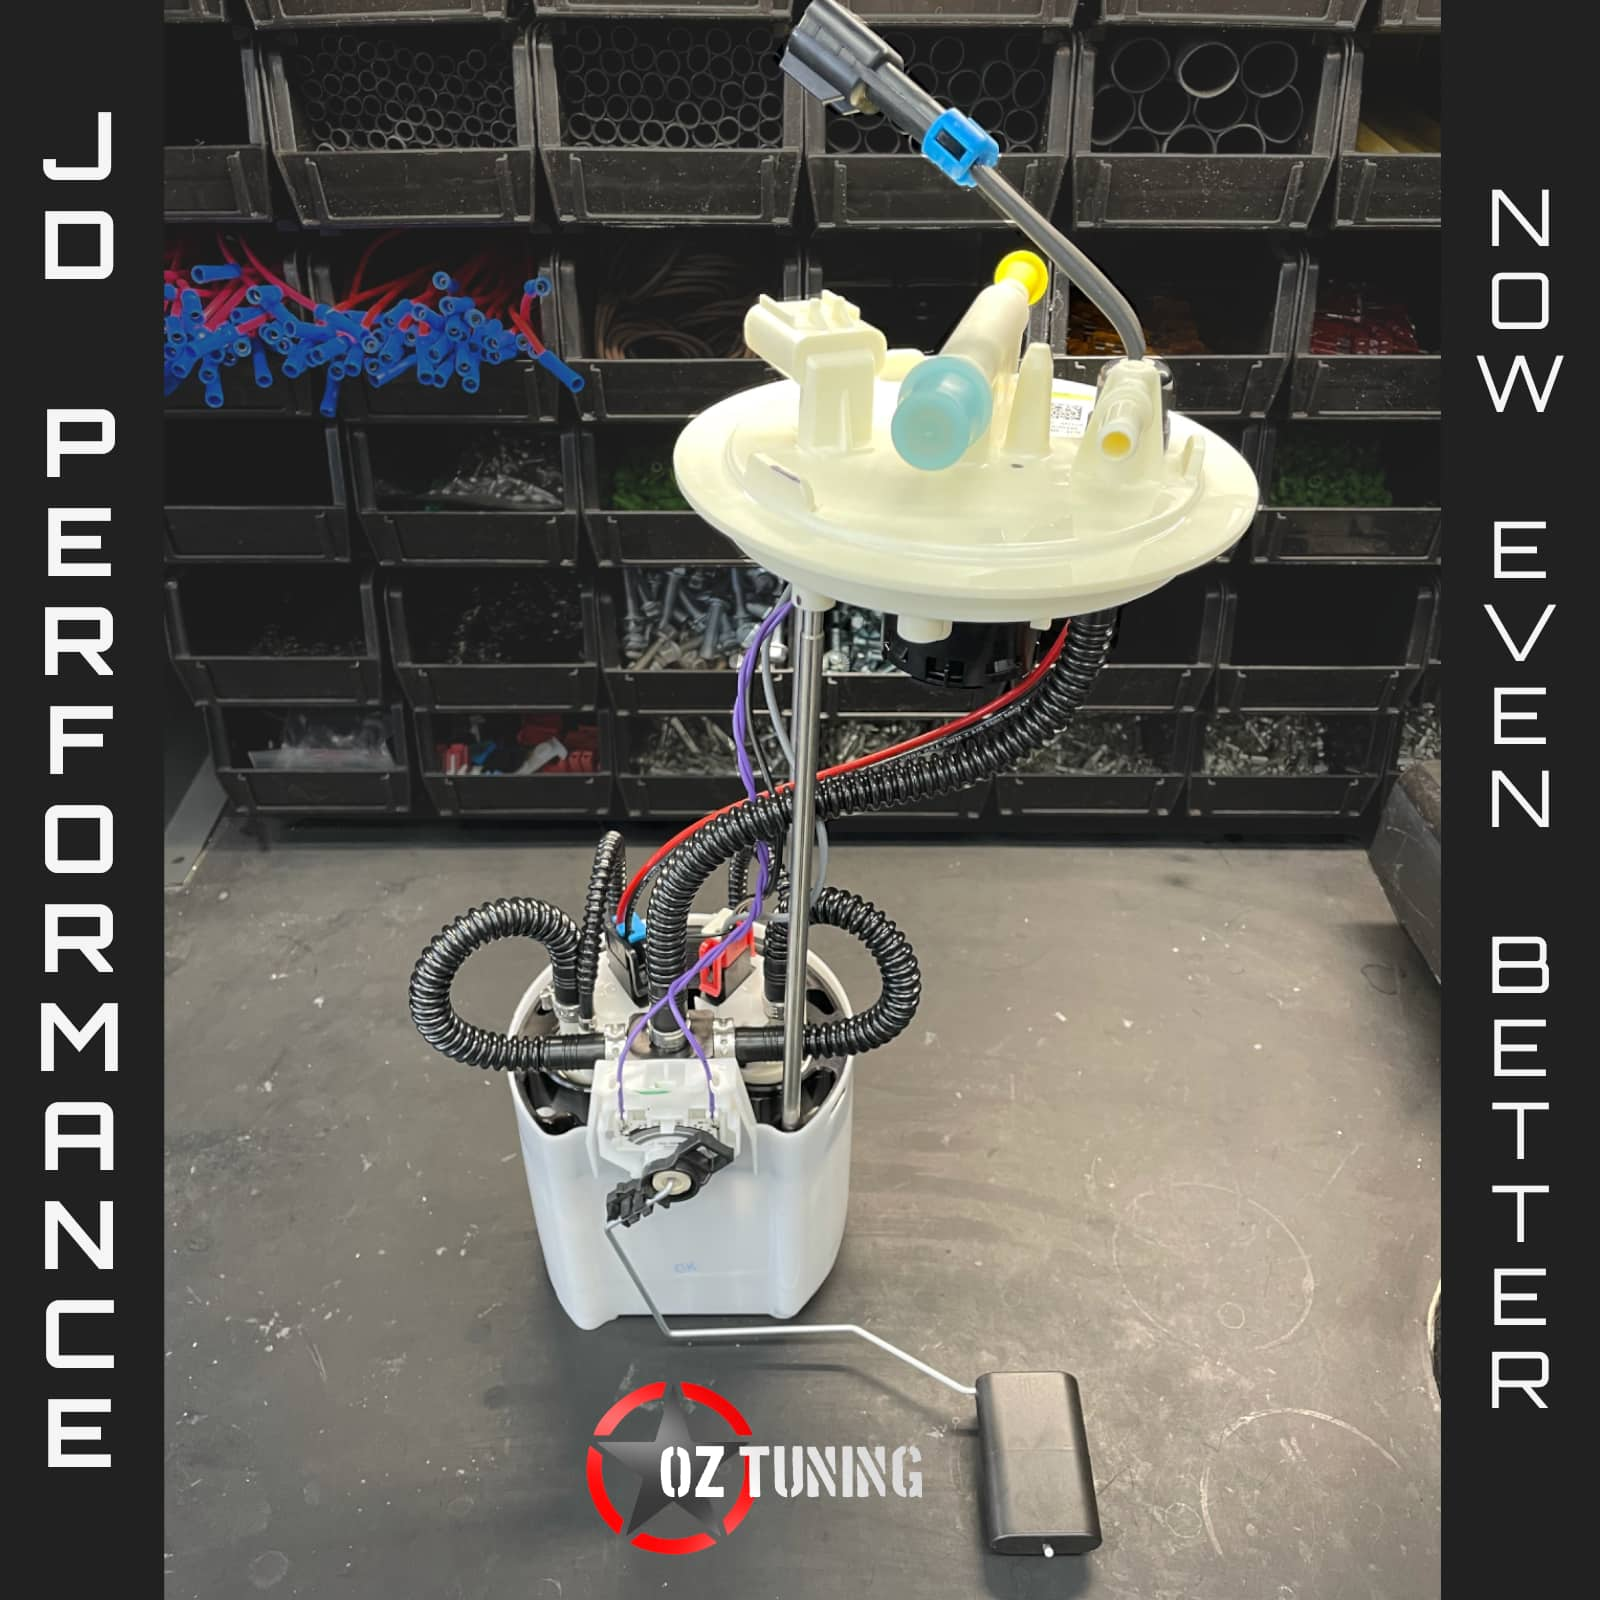 DUAL-PUMP FROM JD PERFORMANCE SOLUTIONS. DROP-IN RETURNLESS FUEL MODULE